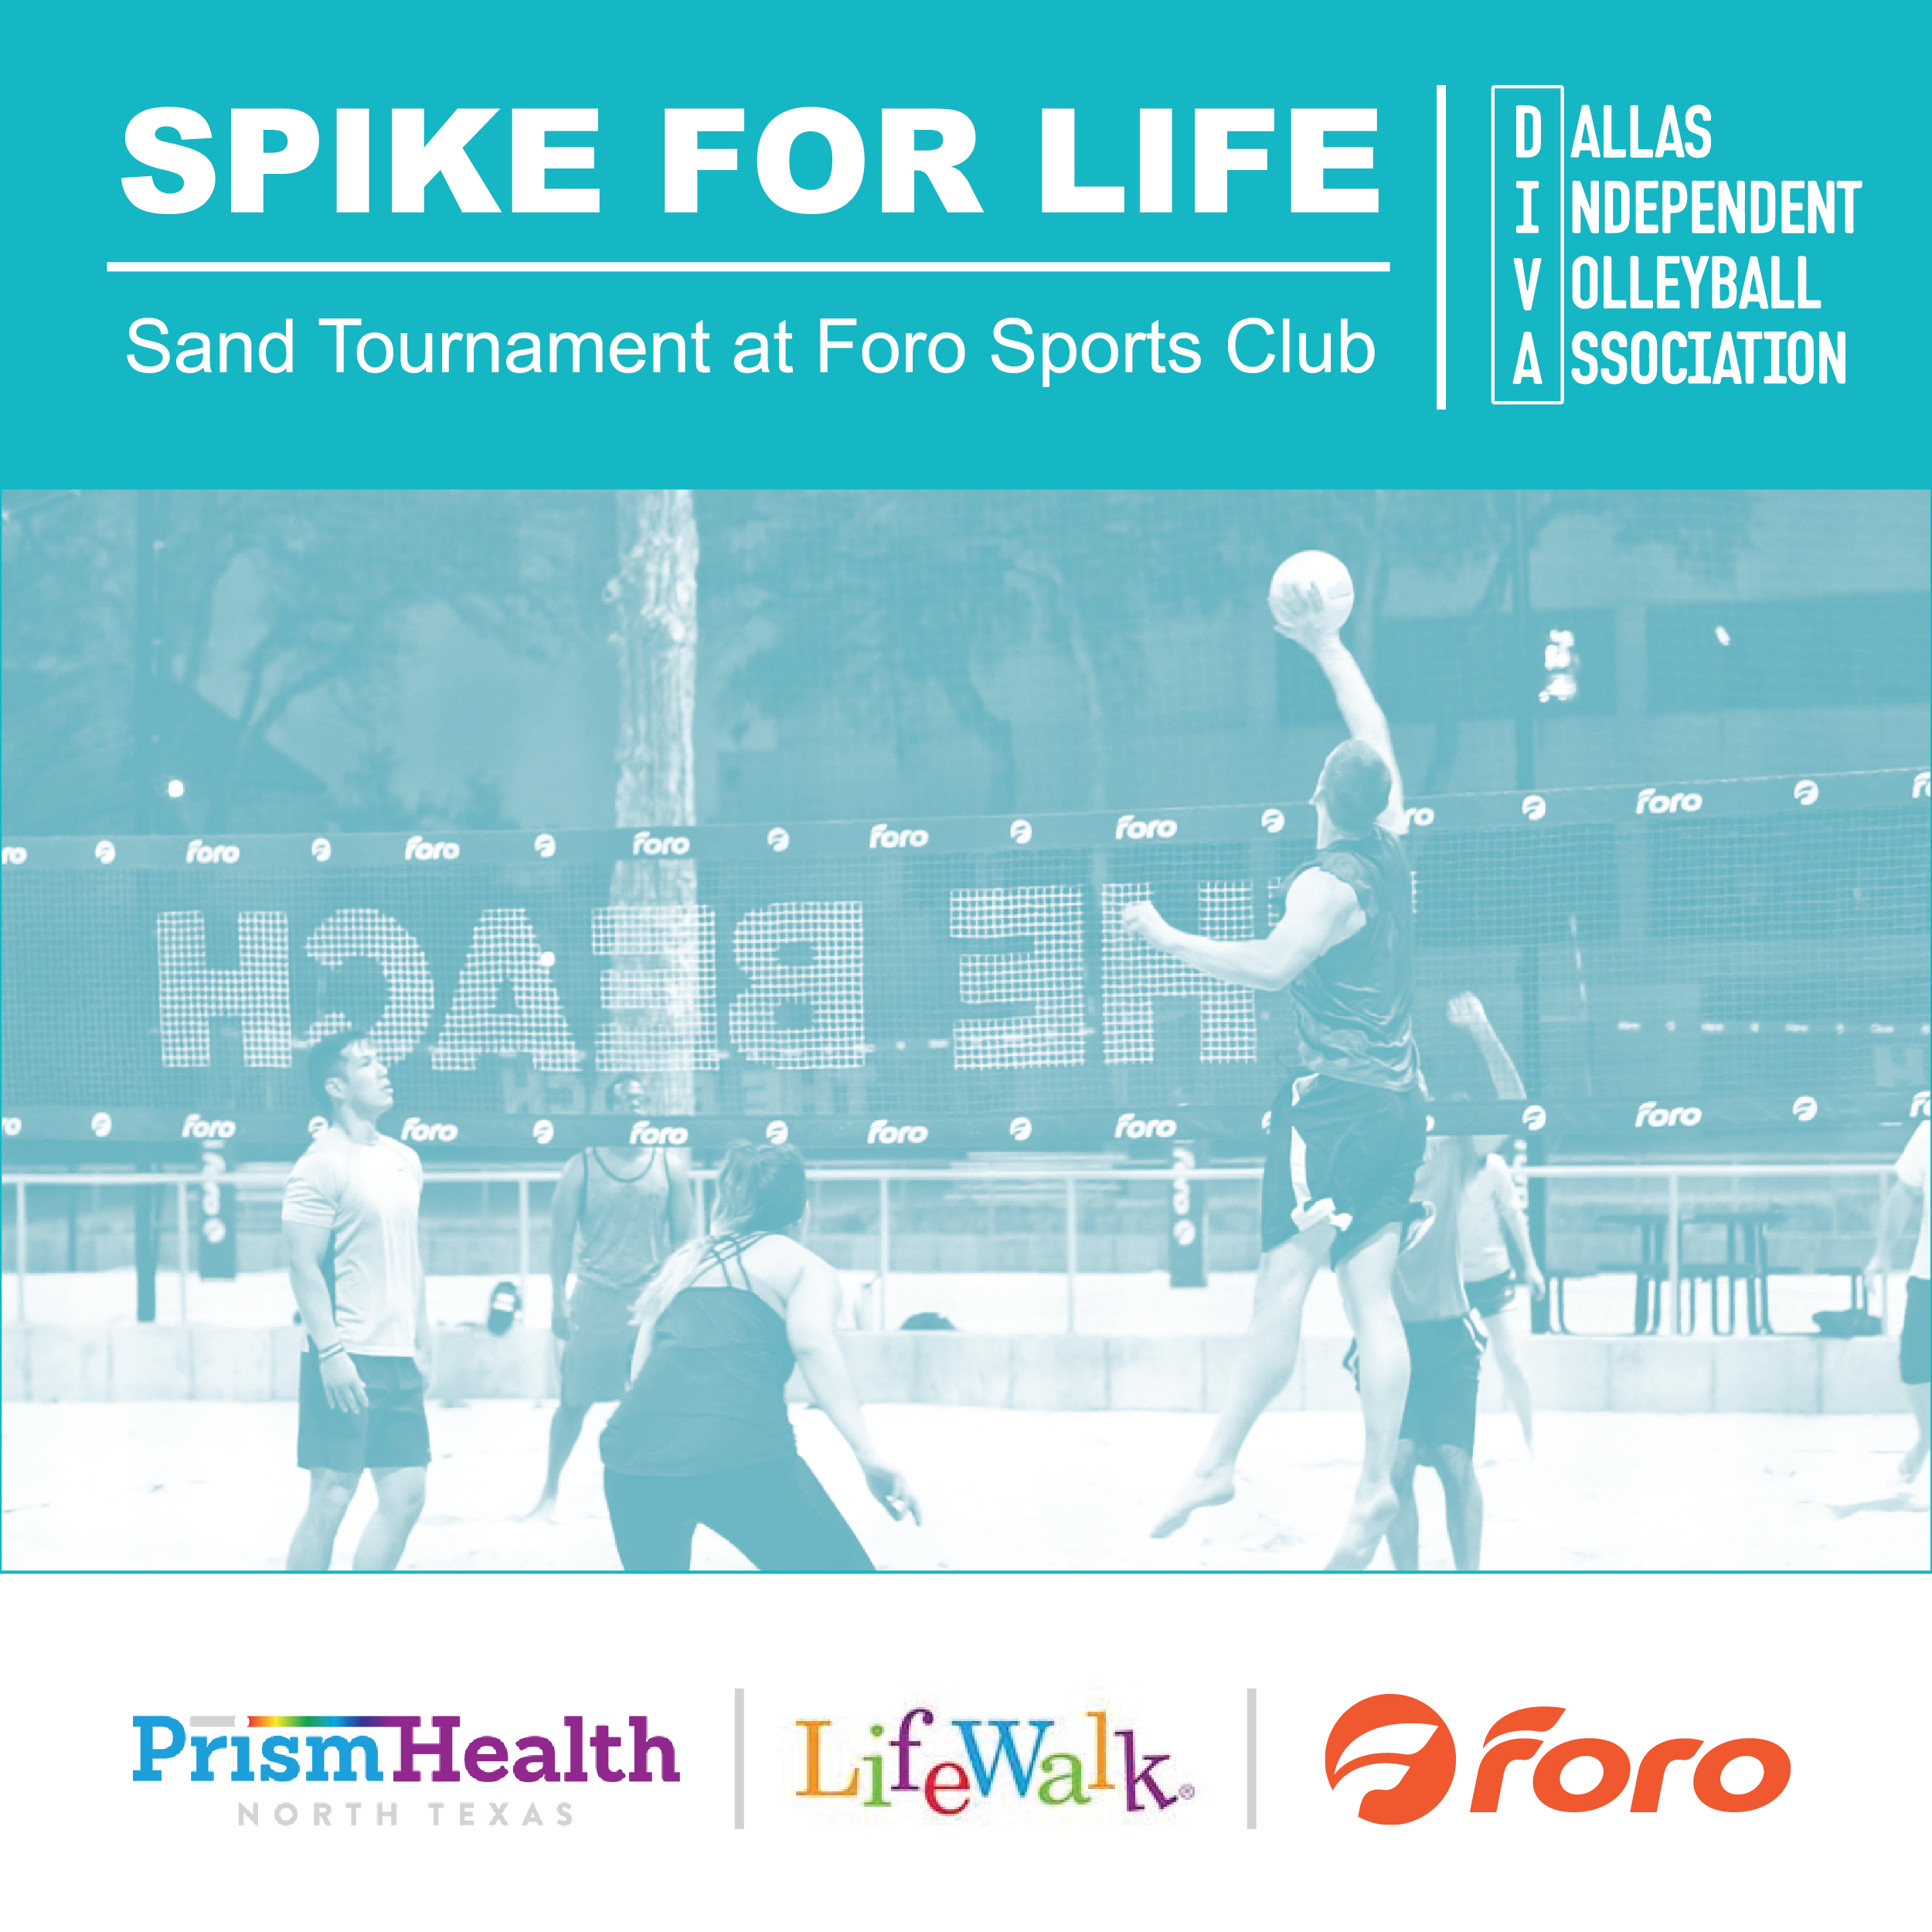 SPIKE FOR LIFE - What:DIVA & FORO present, Spike for Life Tournament - 4x4 Competitive / 6x6 For Fun / Net proceeds benefit Prism Health and LifeWalkWhen:Sept 8th 2018, Check-in 9AM, Play starts 10AMCost:Sign-up with team or as a single player, 4x4 Player Fee: $20 / 6x6 Player Fee: $15Register:http://www.divadallas.org/tournaments